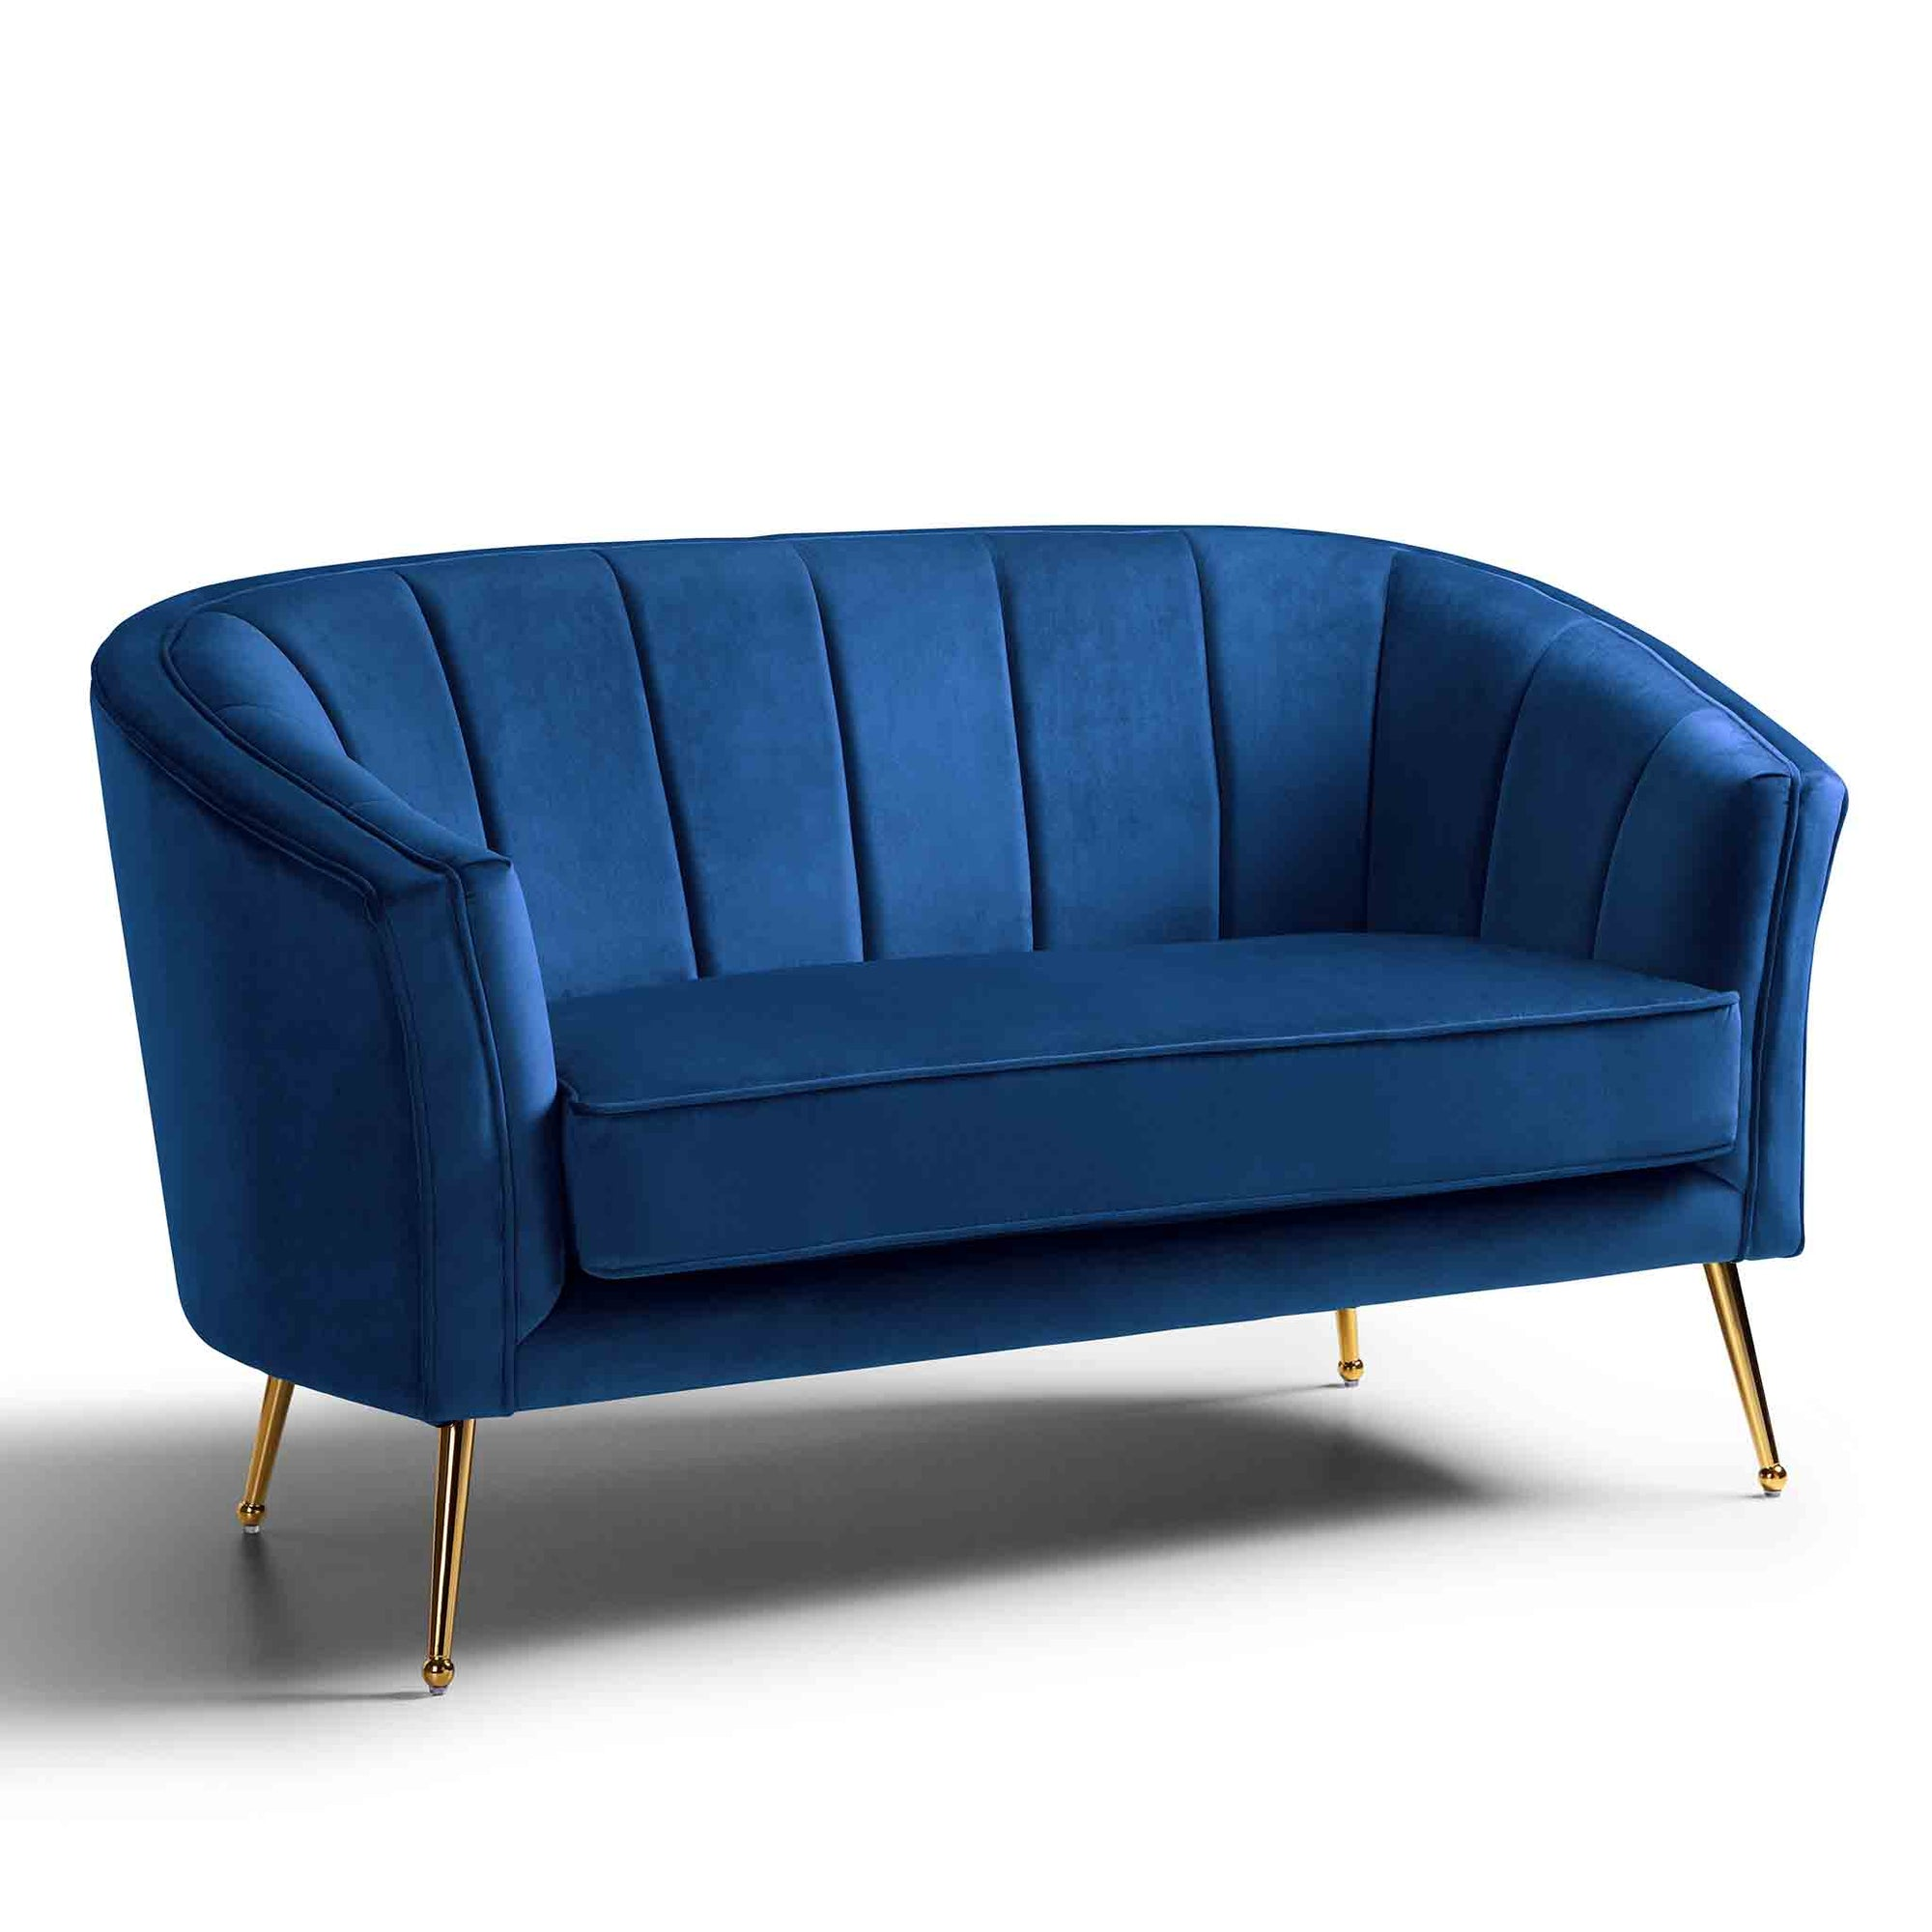 Adele Two Seater Accent Chair - Royal Blue